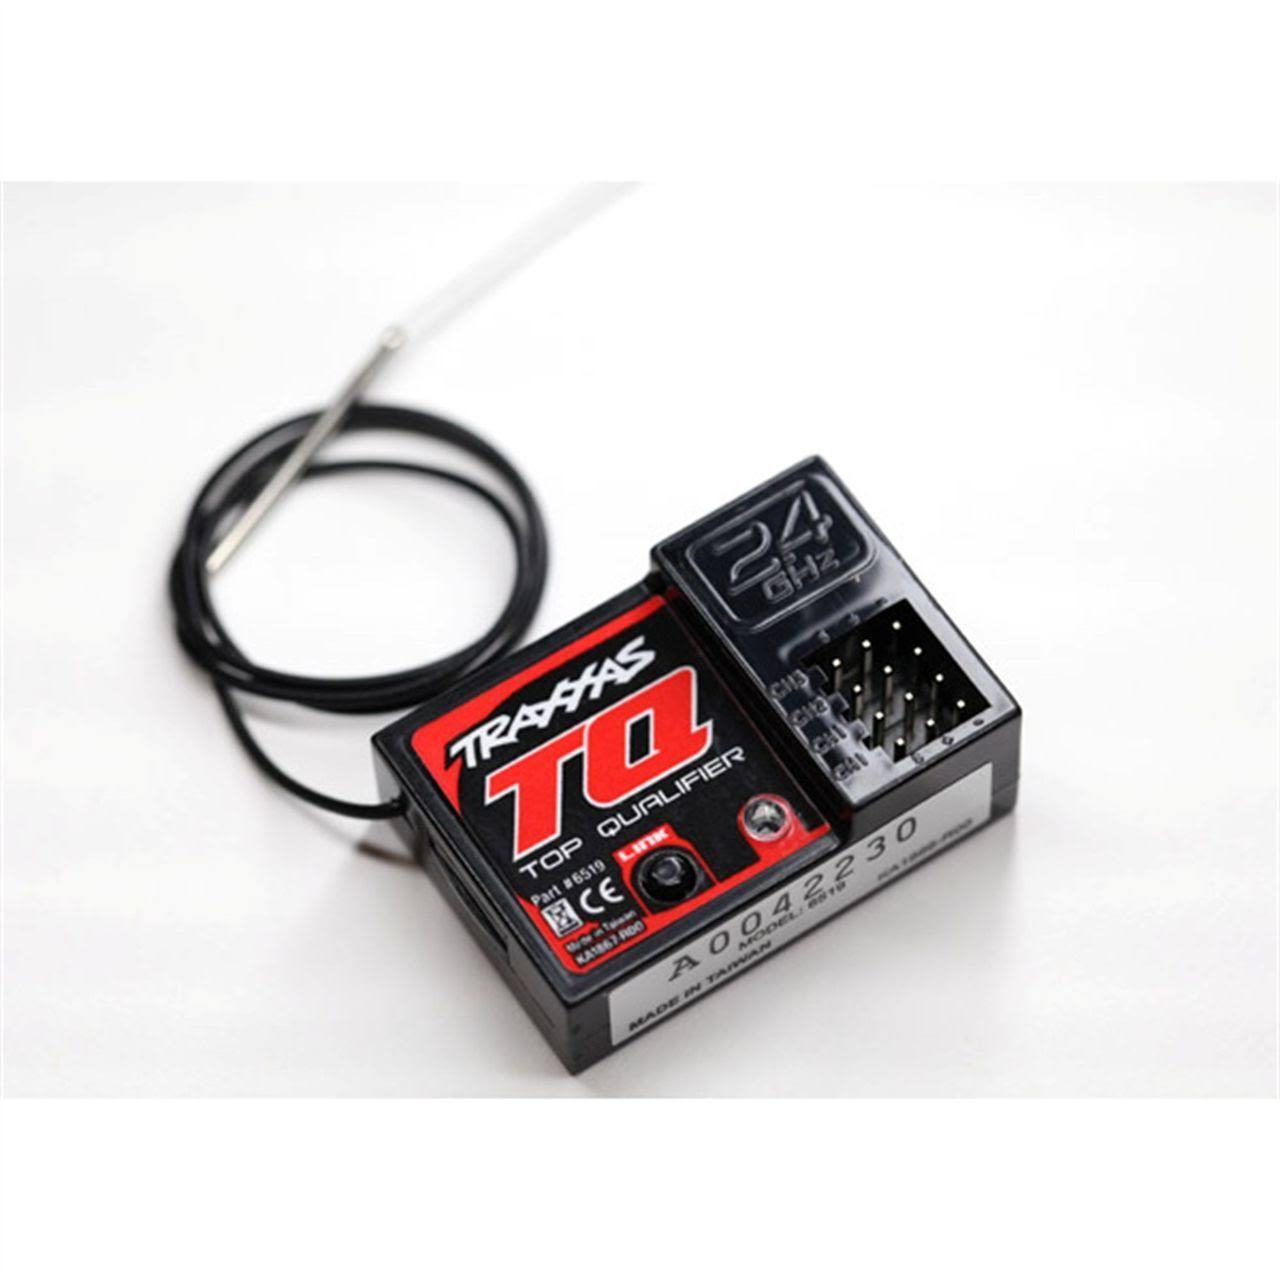 Traxxas Micro TQ Receiver - 2.4GHz, 3 Channel